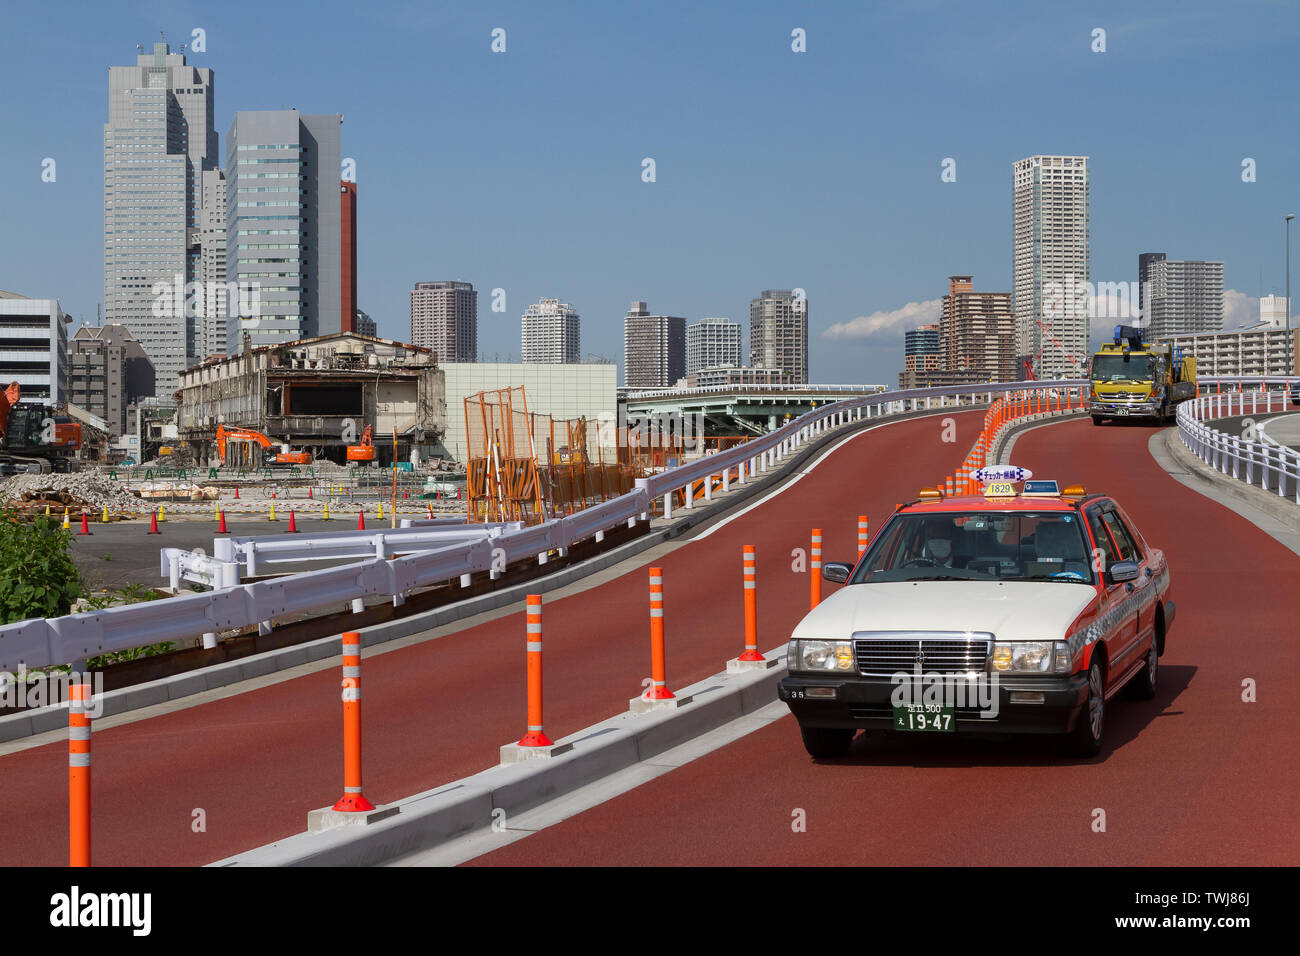 A taxi on a road overlooking the site of the old Tsukiji Wholesale fish market which is being demolished. Tokyo, Japan. Thursday May 30th 2019 The fa - Stock Image